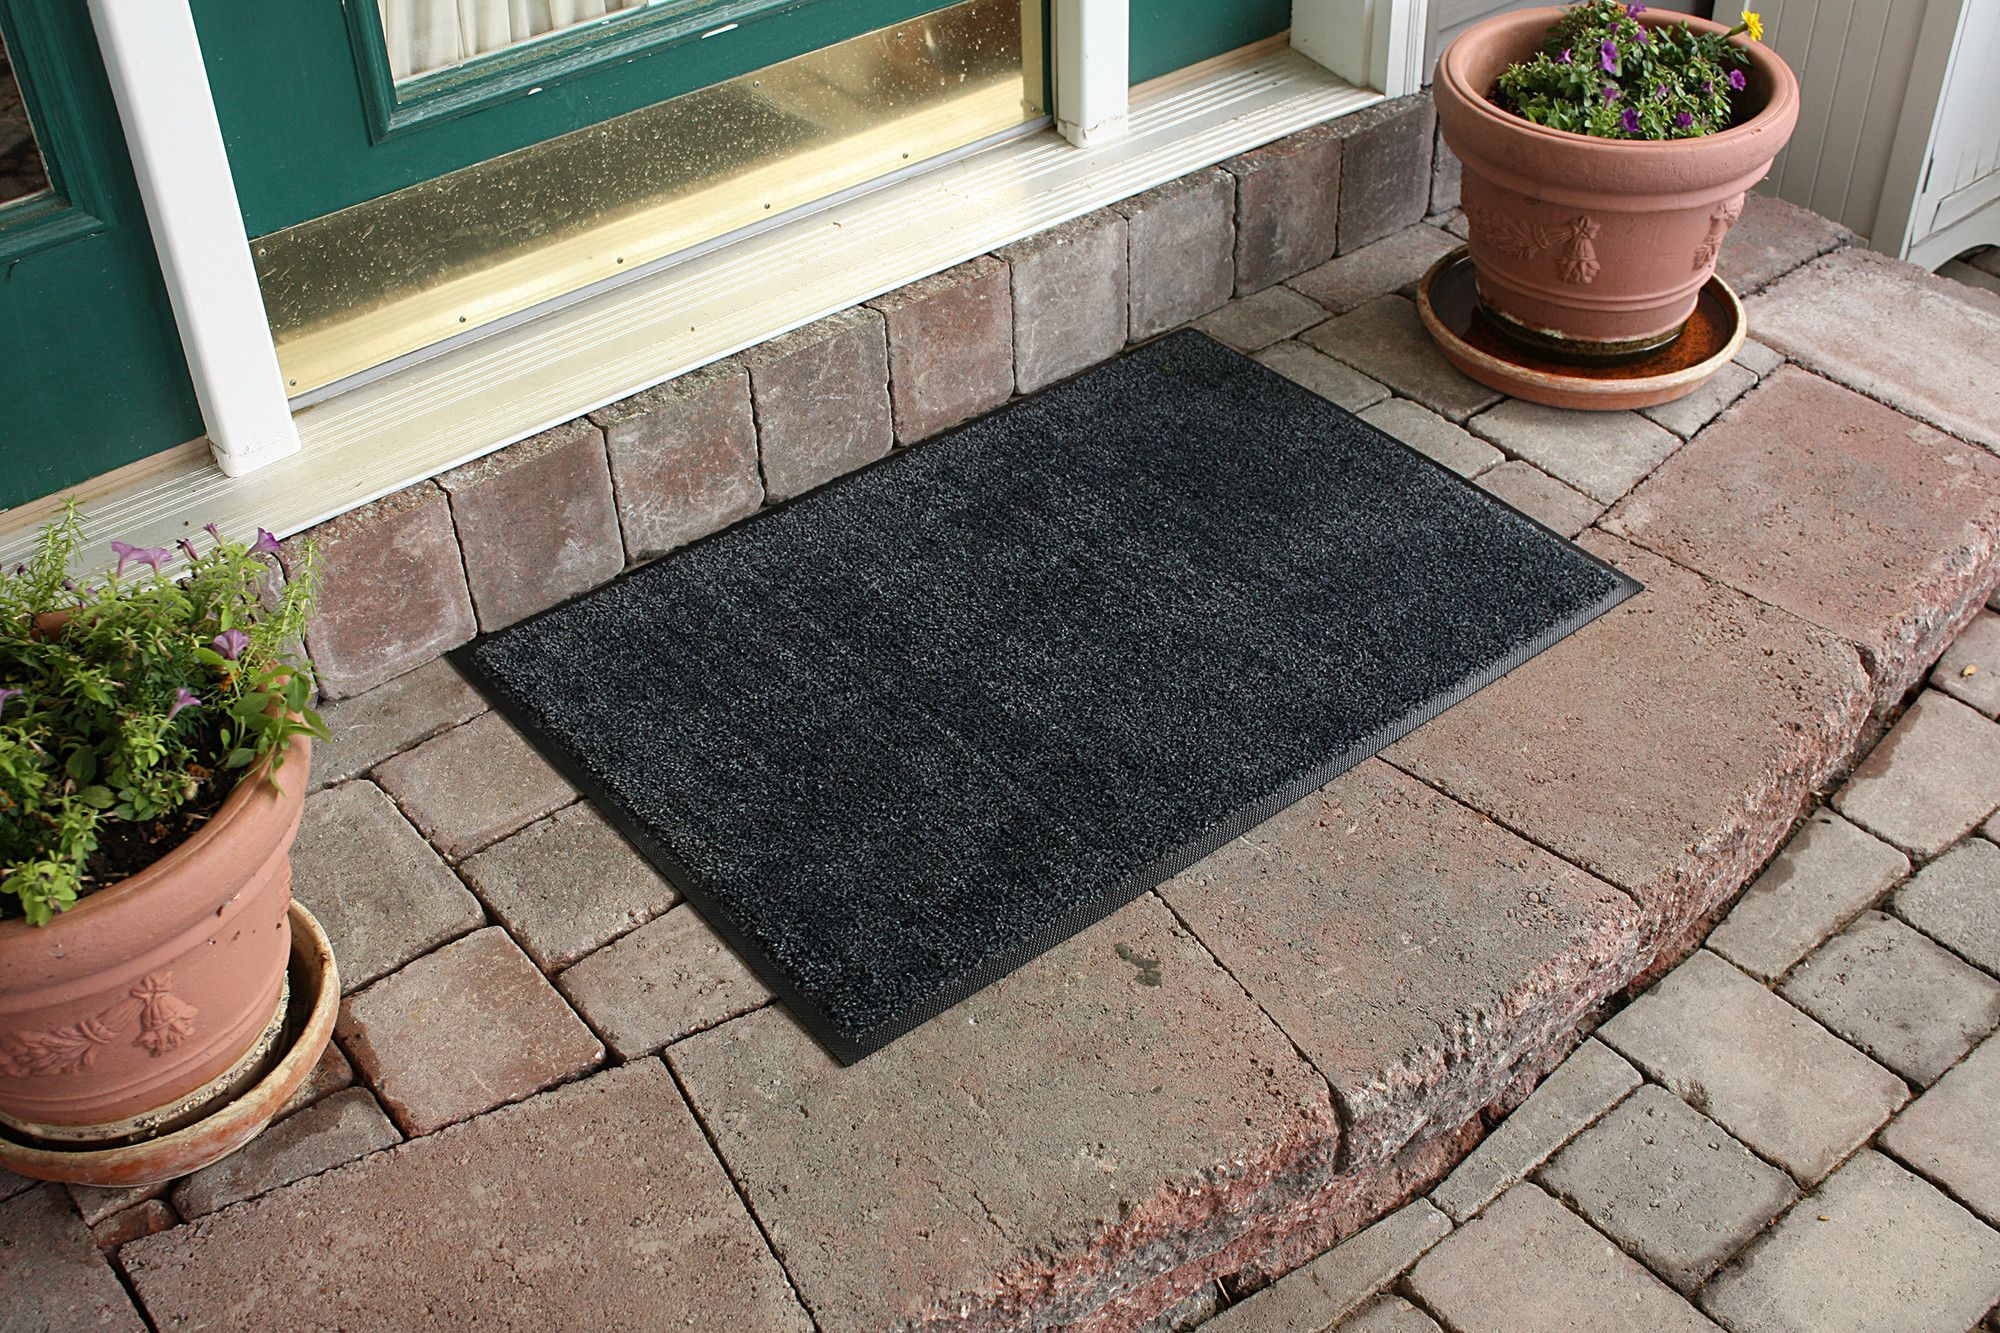 Aqua Shield Dirt Stopper Supreme Doormat & Aqua Shield Dirt Stopper Supreme Doormat | Doormat Supreme and Aqua